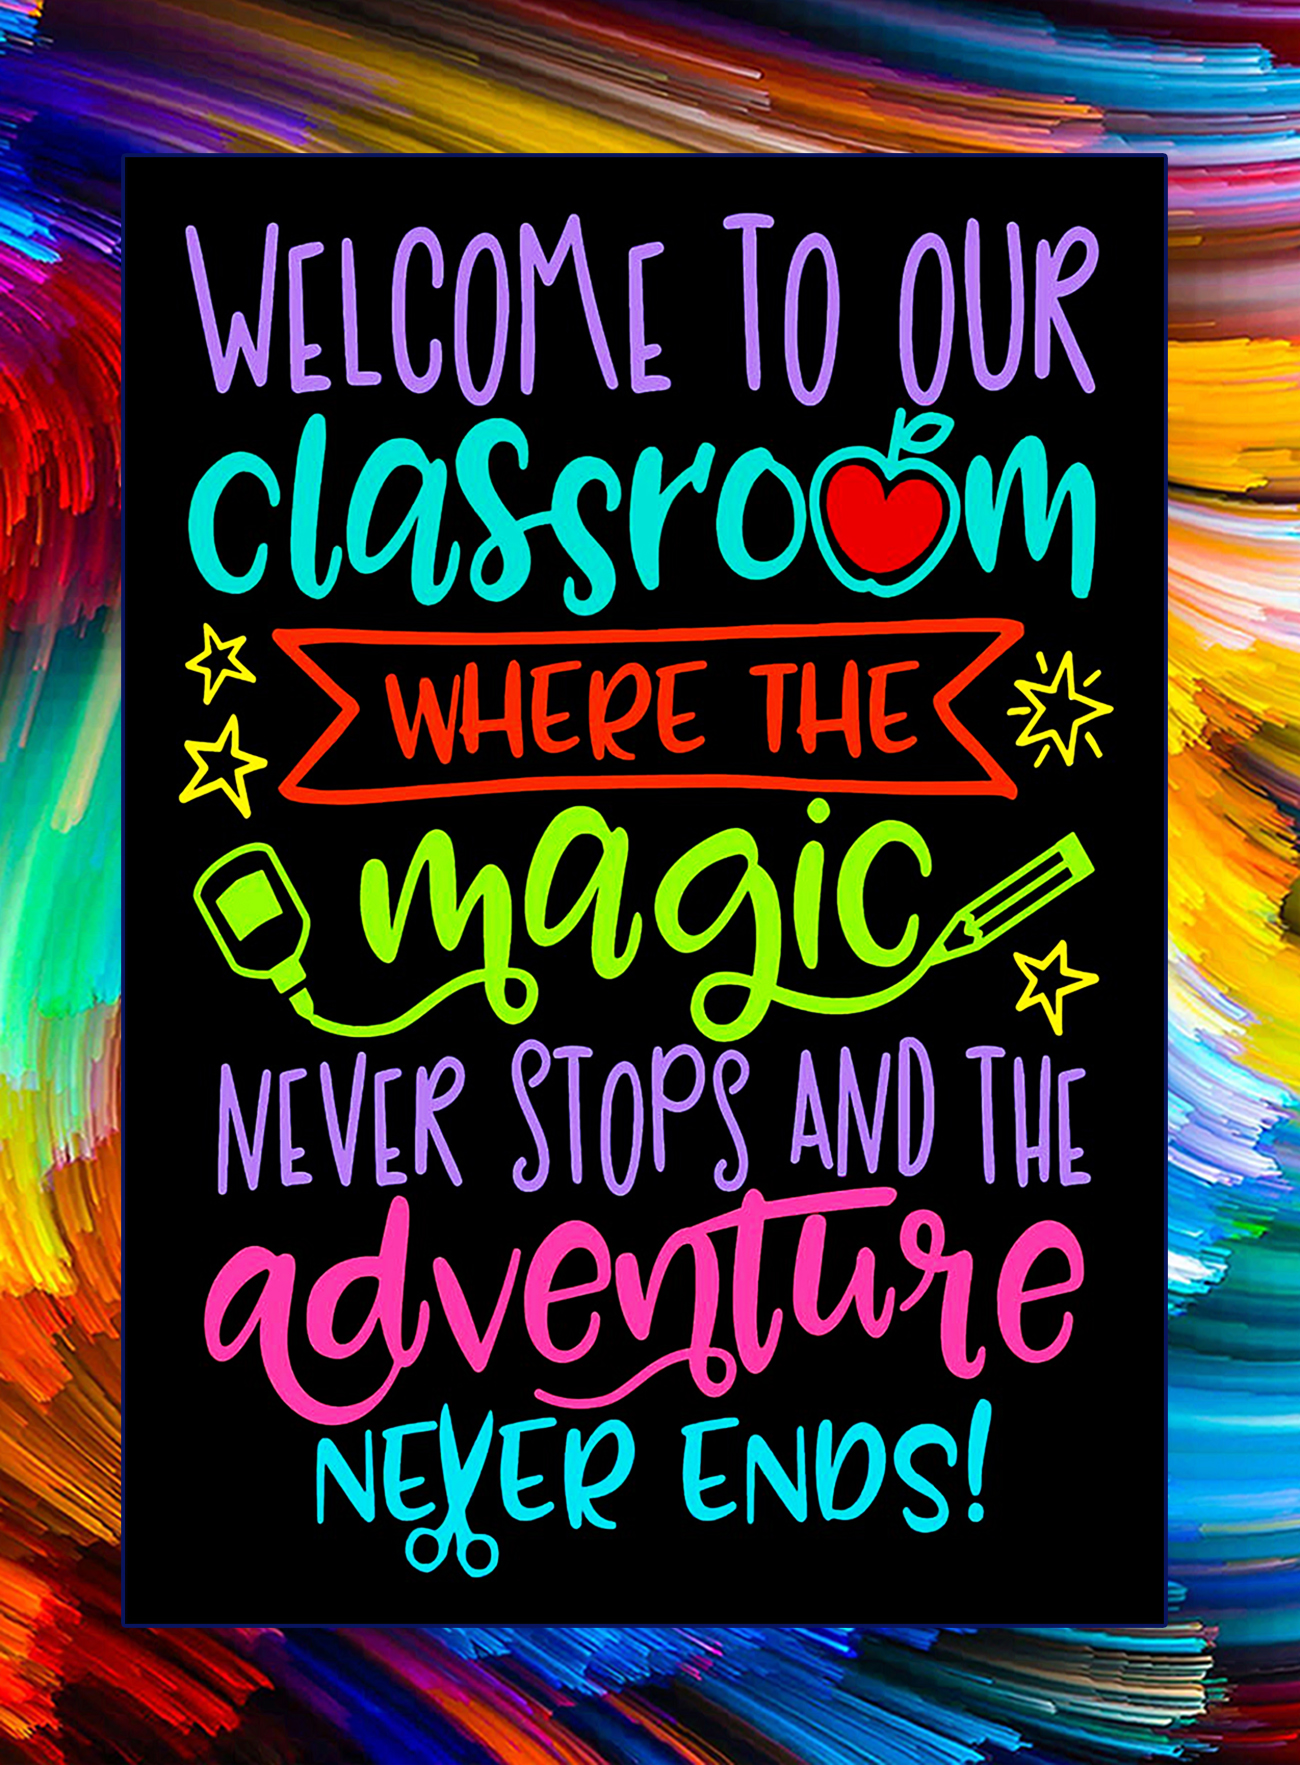 Welcome to our classroom where the magic never stops poster - A1